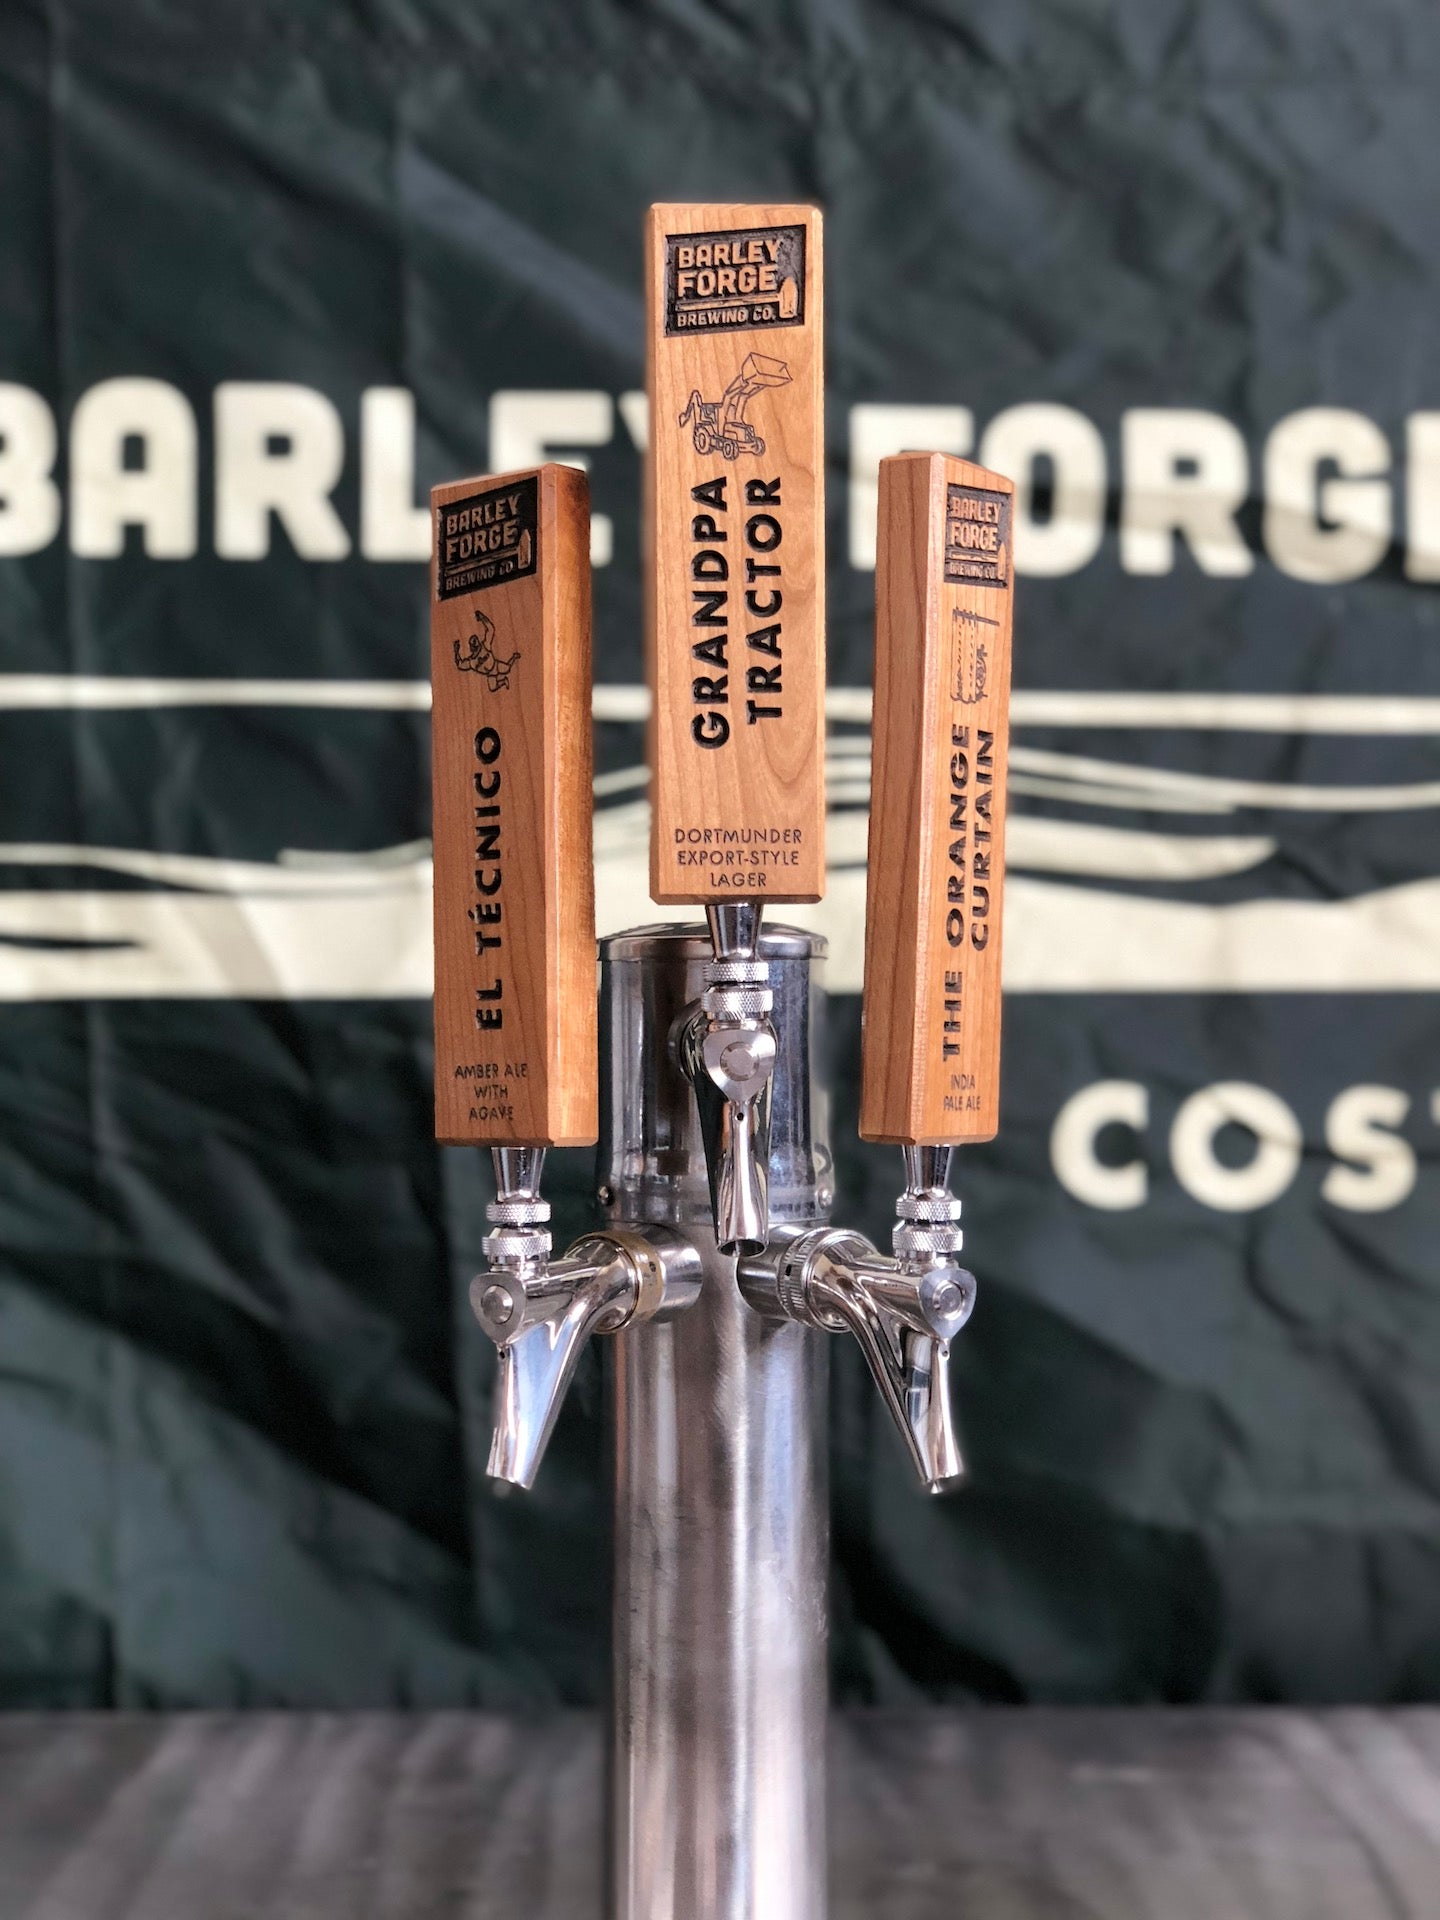 Cherry Wood Tap Handles – Barley Forge Brewing Co